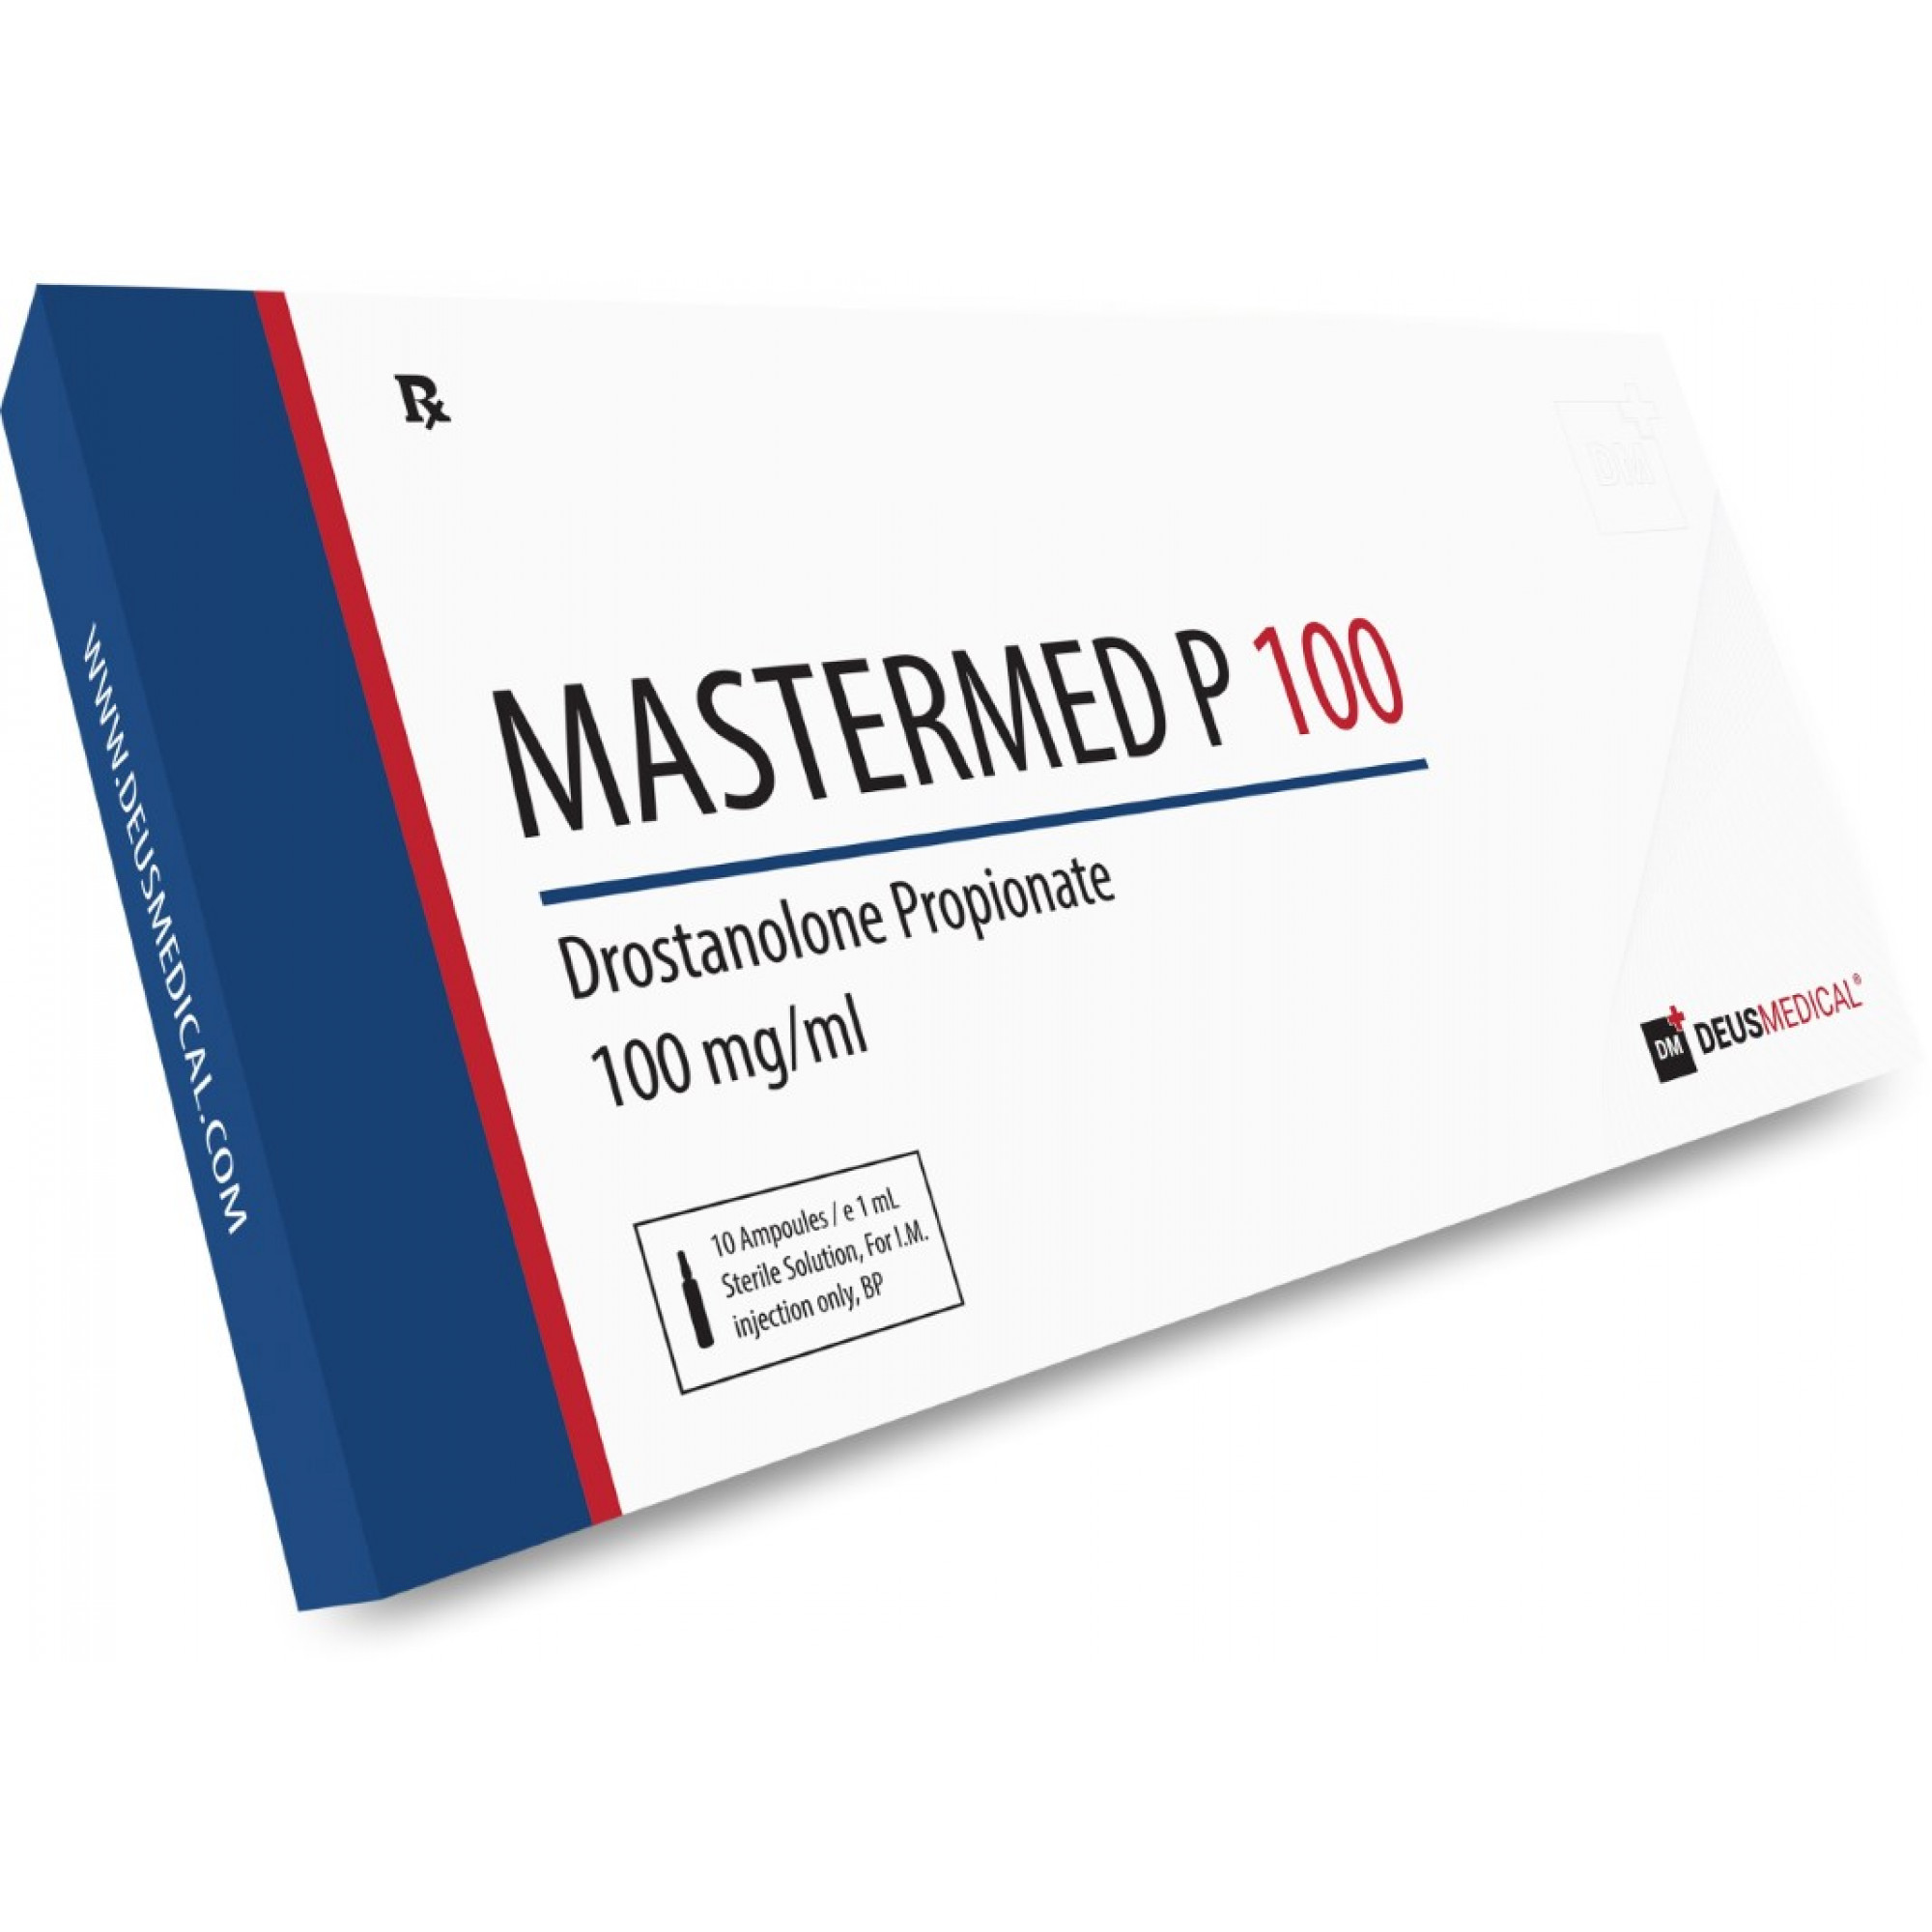 MASTERMED P 100 (Drostanolone Propionate), DEUS MEDICAL, BUY STEROIDS ONLINE - www.DEUSPOWER.com